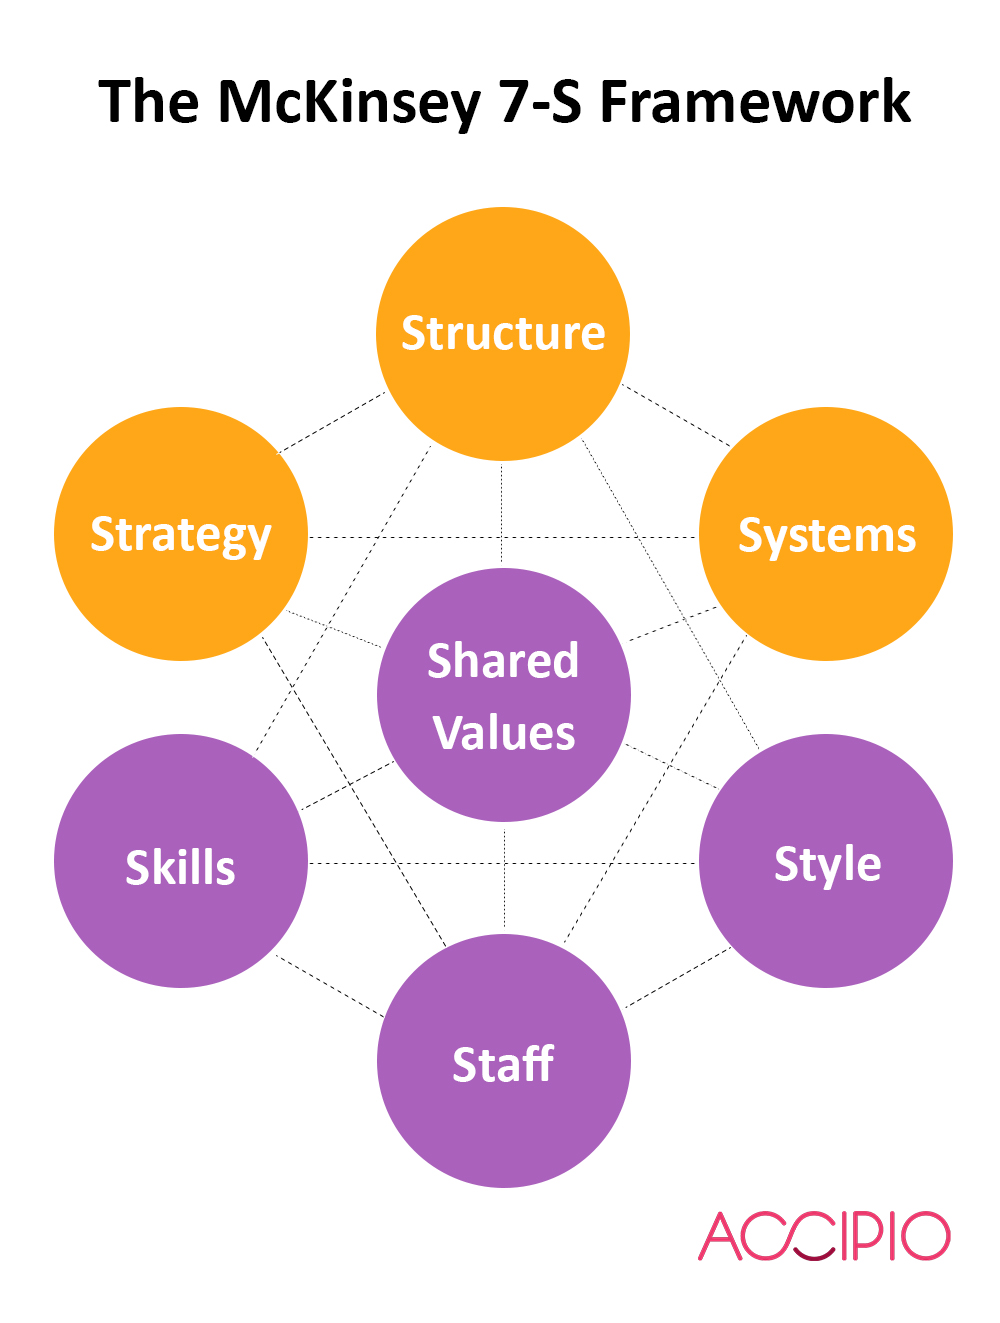 mckinsey case study framework Organizational alignment: the 7-s model  case study jeffrey l bradach  this framework offers managers a tool for diagnosing problems in their organizations.